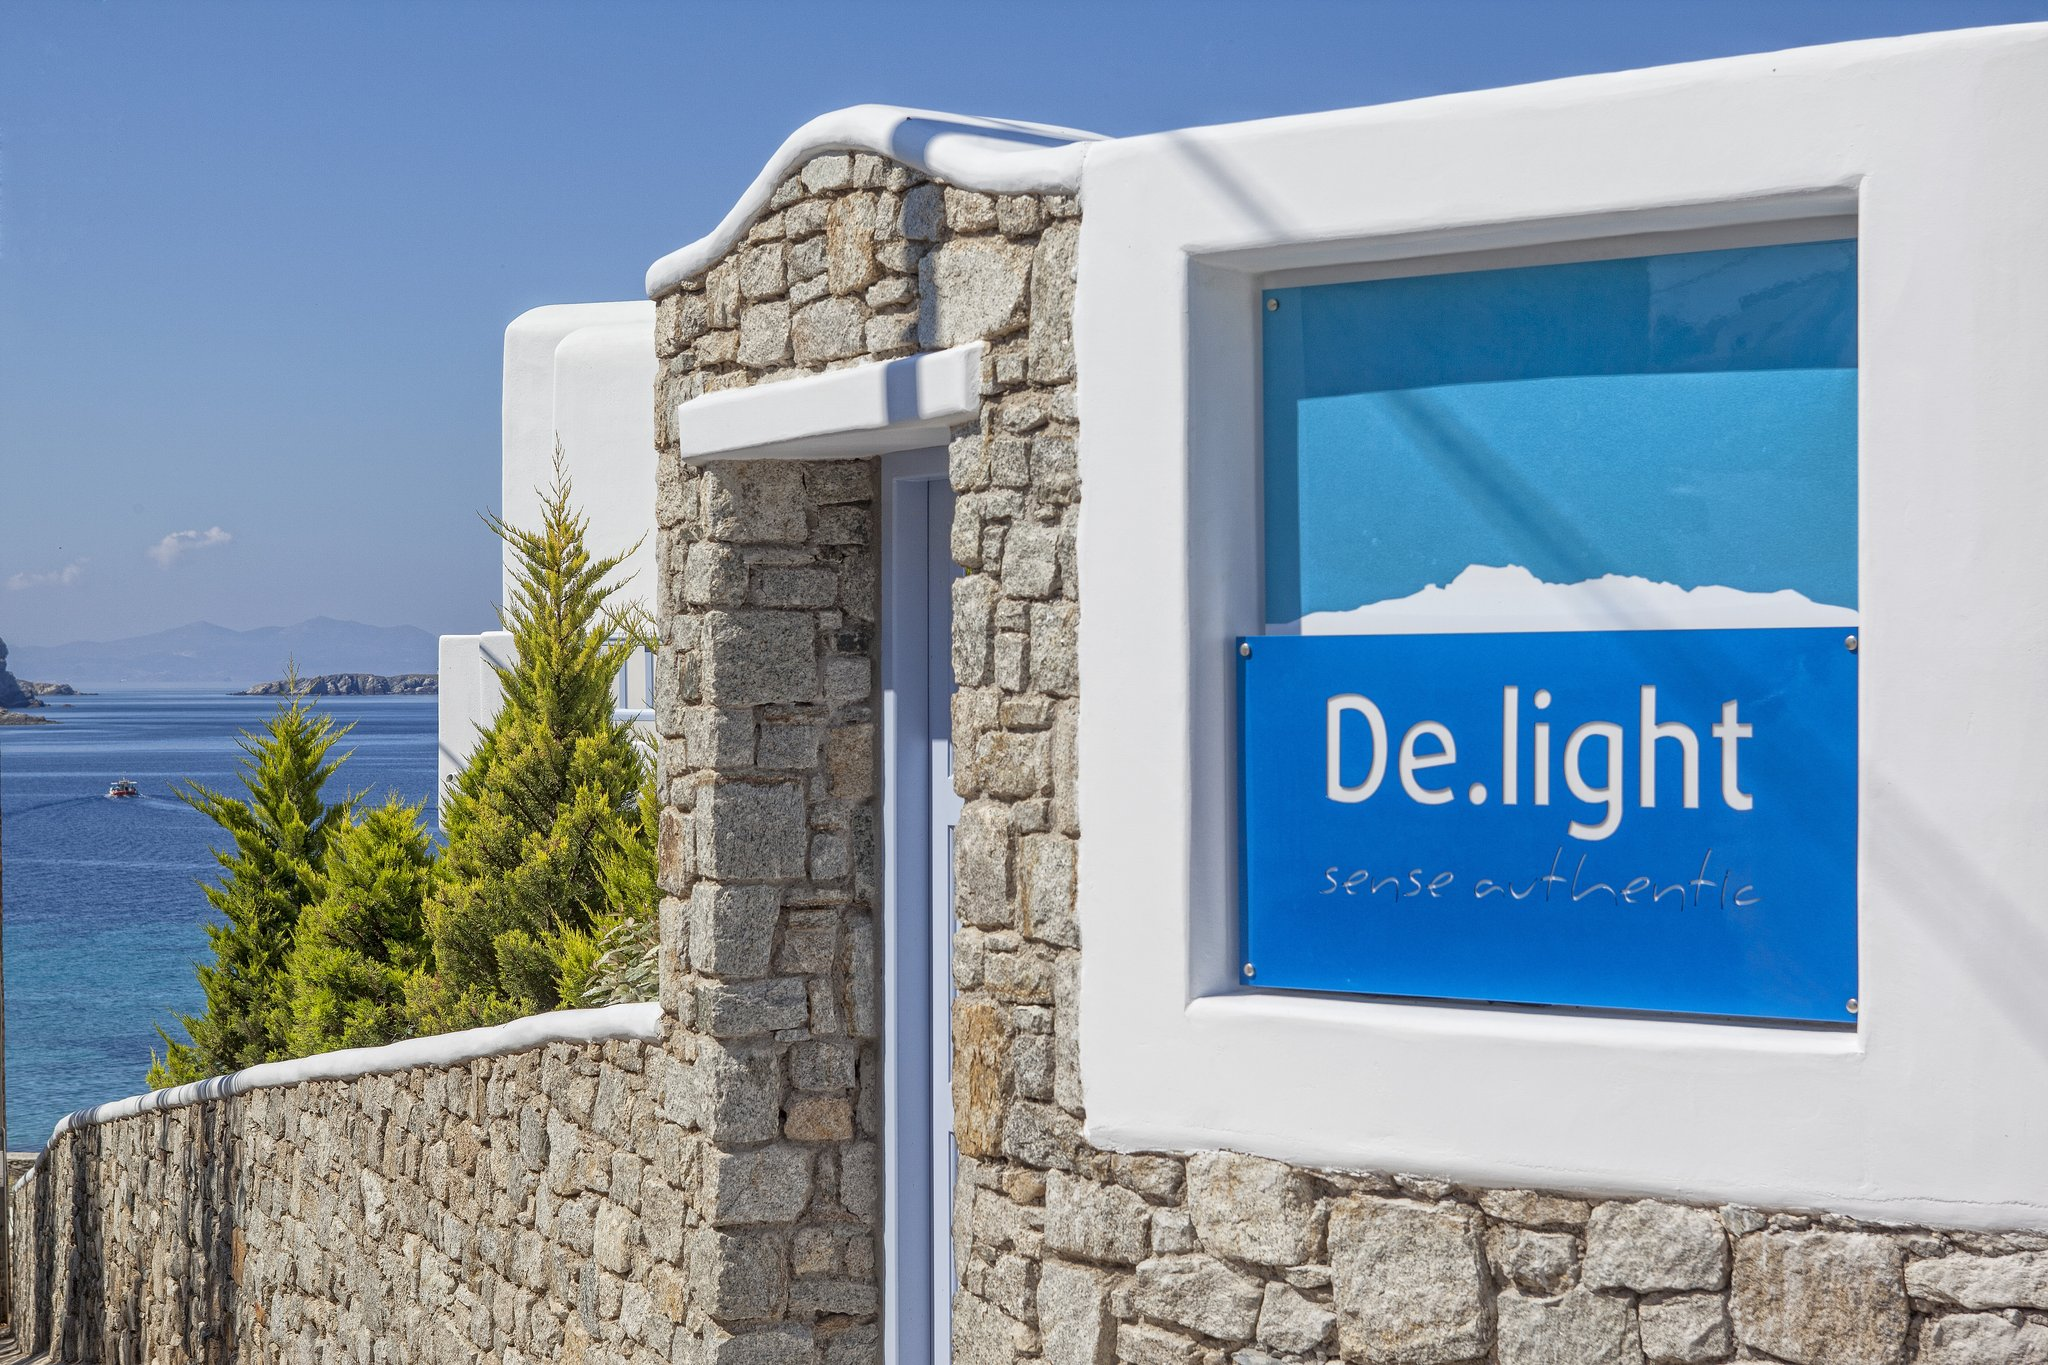 De.light Boutique Hotel